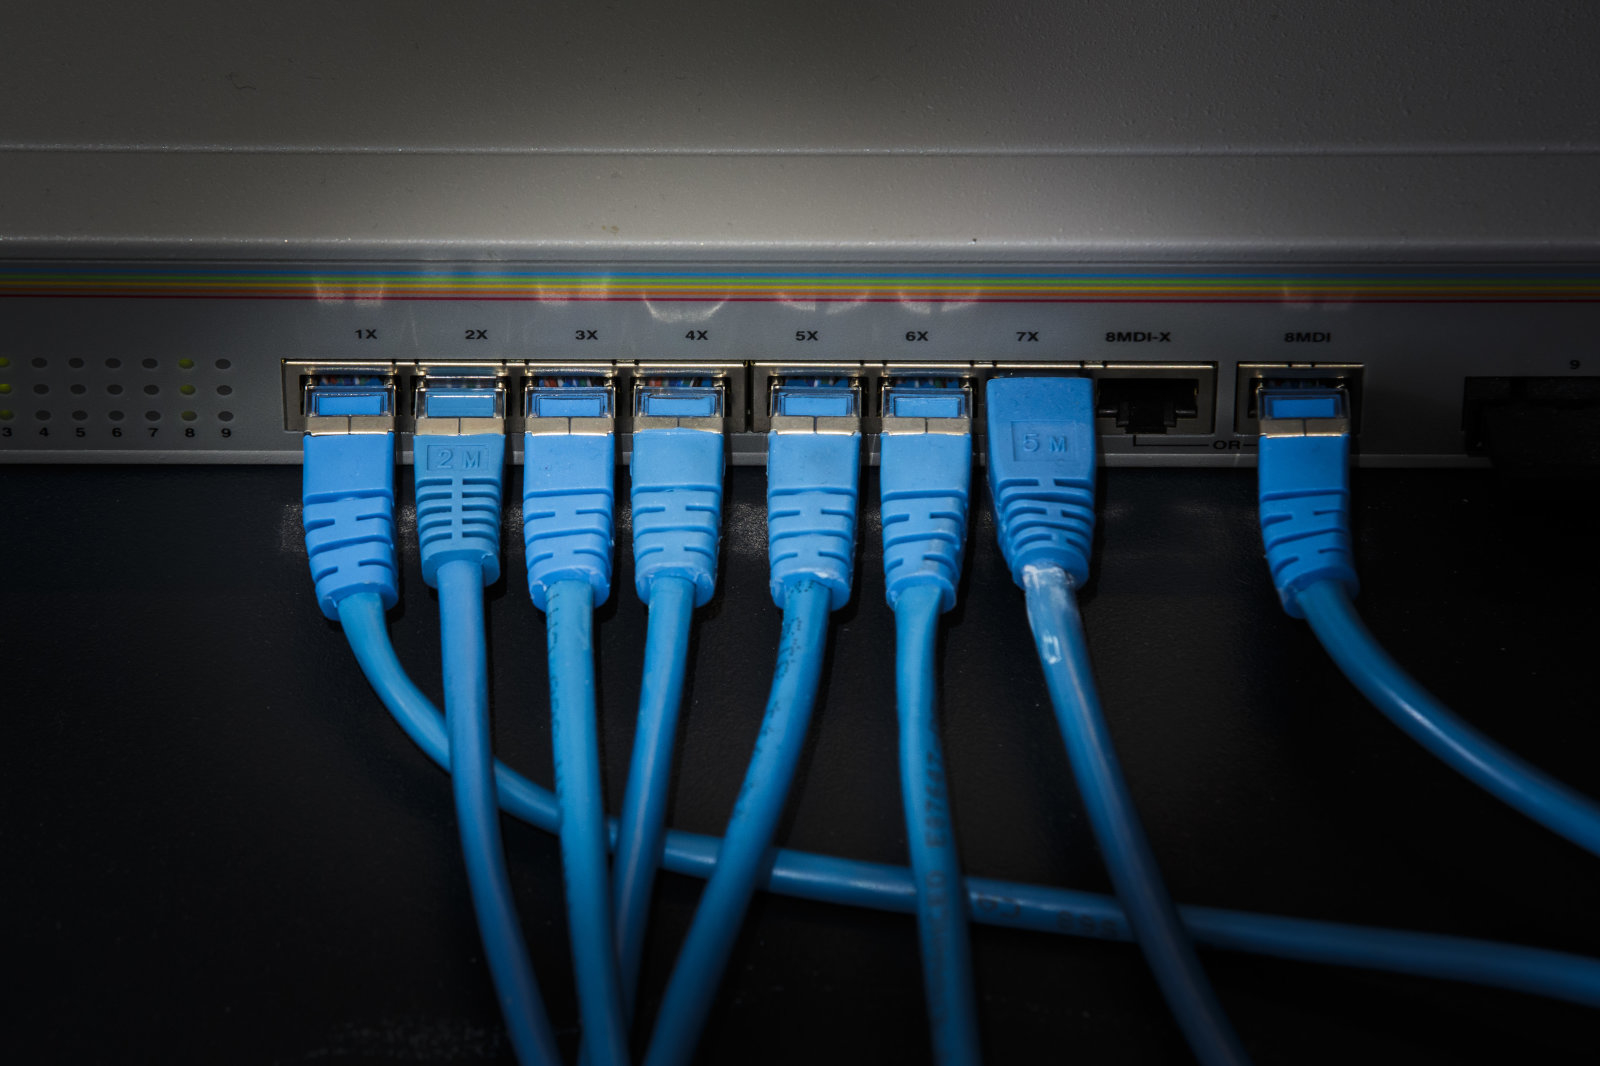 LUXEMBOURG, LUXEMBOURG - NOVEMBER 05: Network cables stuck in an Internet router on November 05, 2015 in Luxembourg, Luxembourg. (Photo by Thomas Trutschel/Photothek via Getty Images)